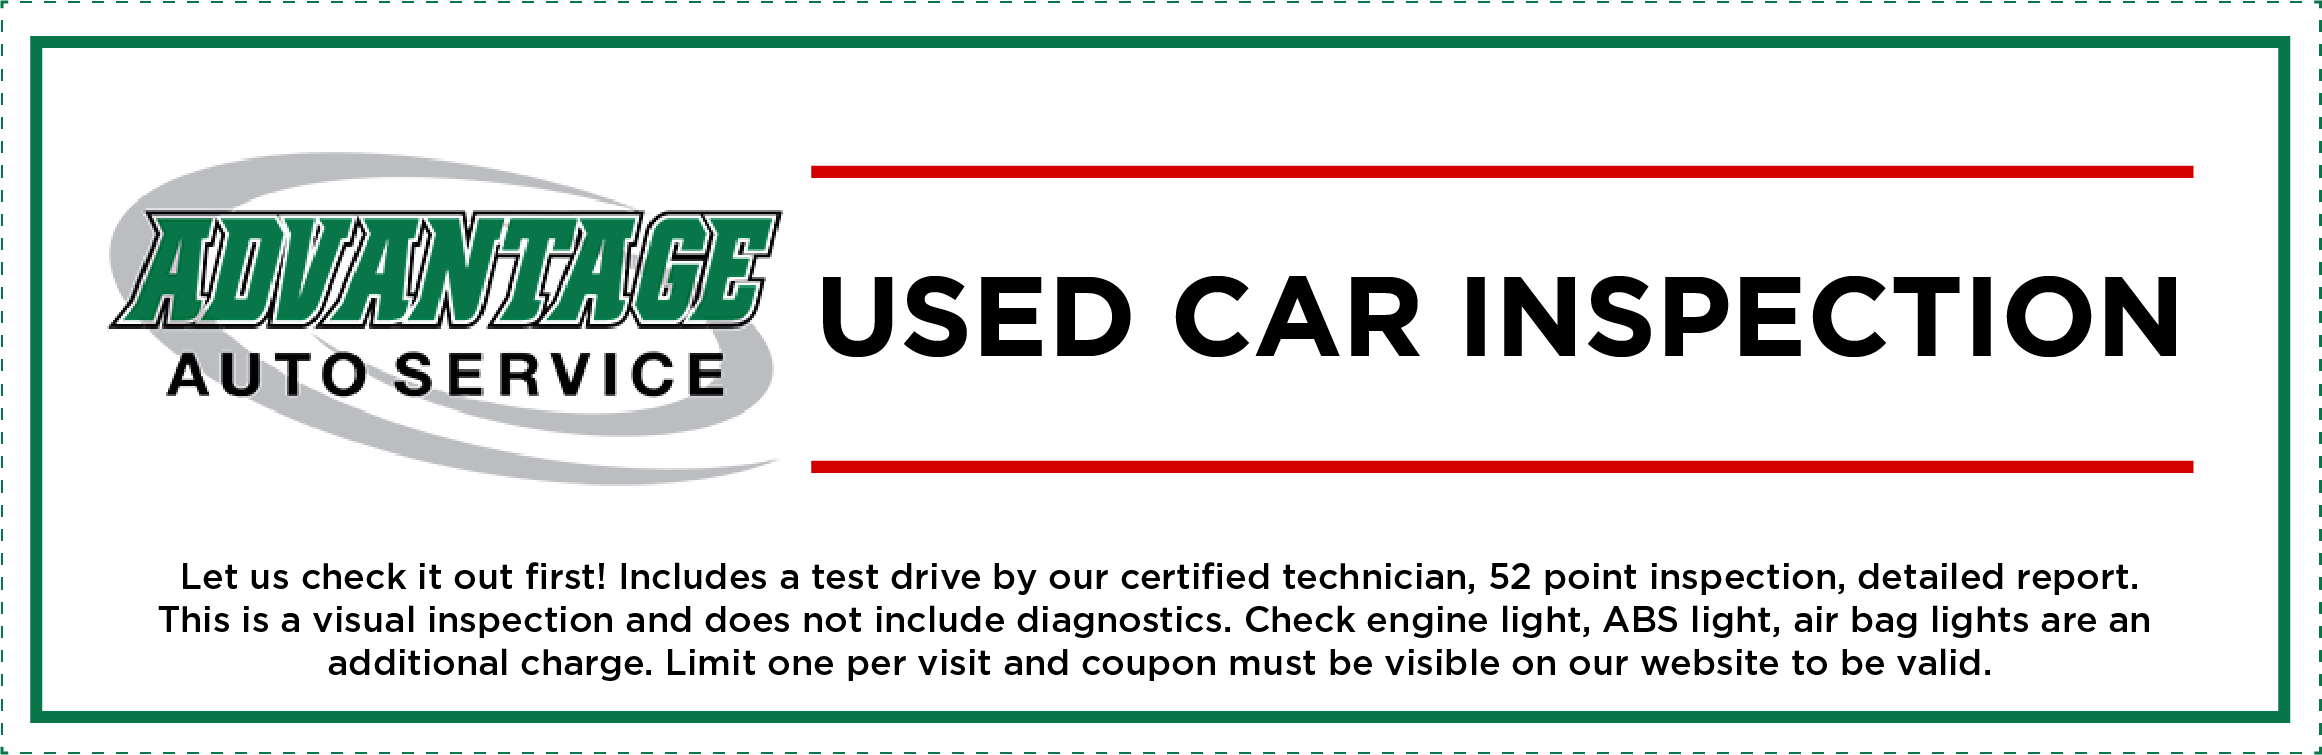 coupon_used_car_inspection